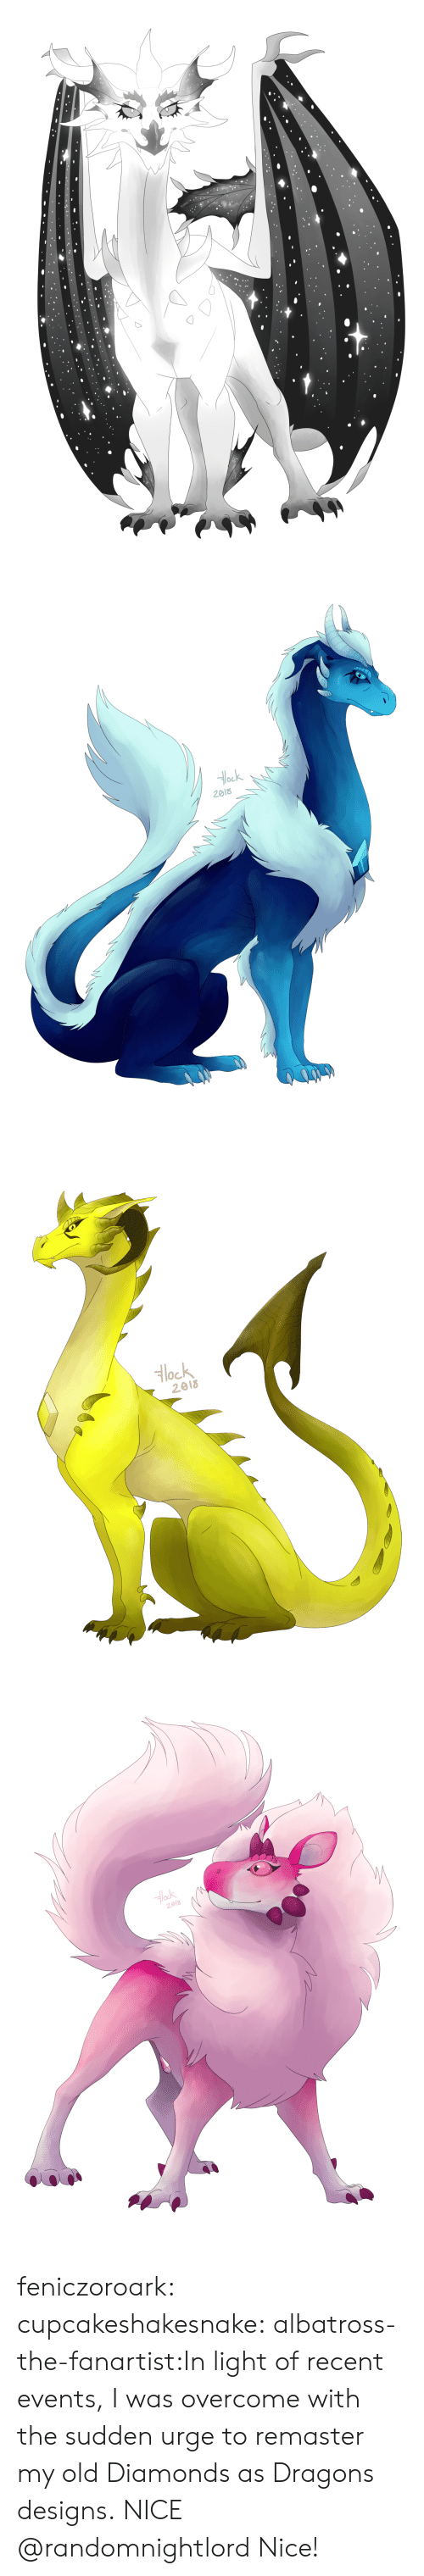 Tumblr, Blog, and Diamond: ock  2018   Hlock  2018 feniczoroark:  cupcakeshakesnake:  albatross-the-fanartist:In light of recent events, I was overcome with the sudden urge to remaster my old Diamonds as Dragons designs. NICE  @randomnightlord   Nice!